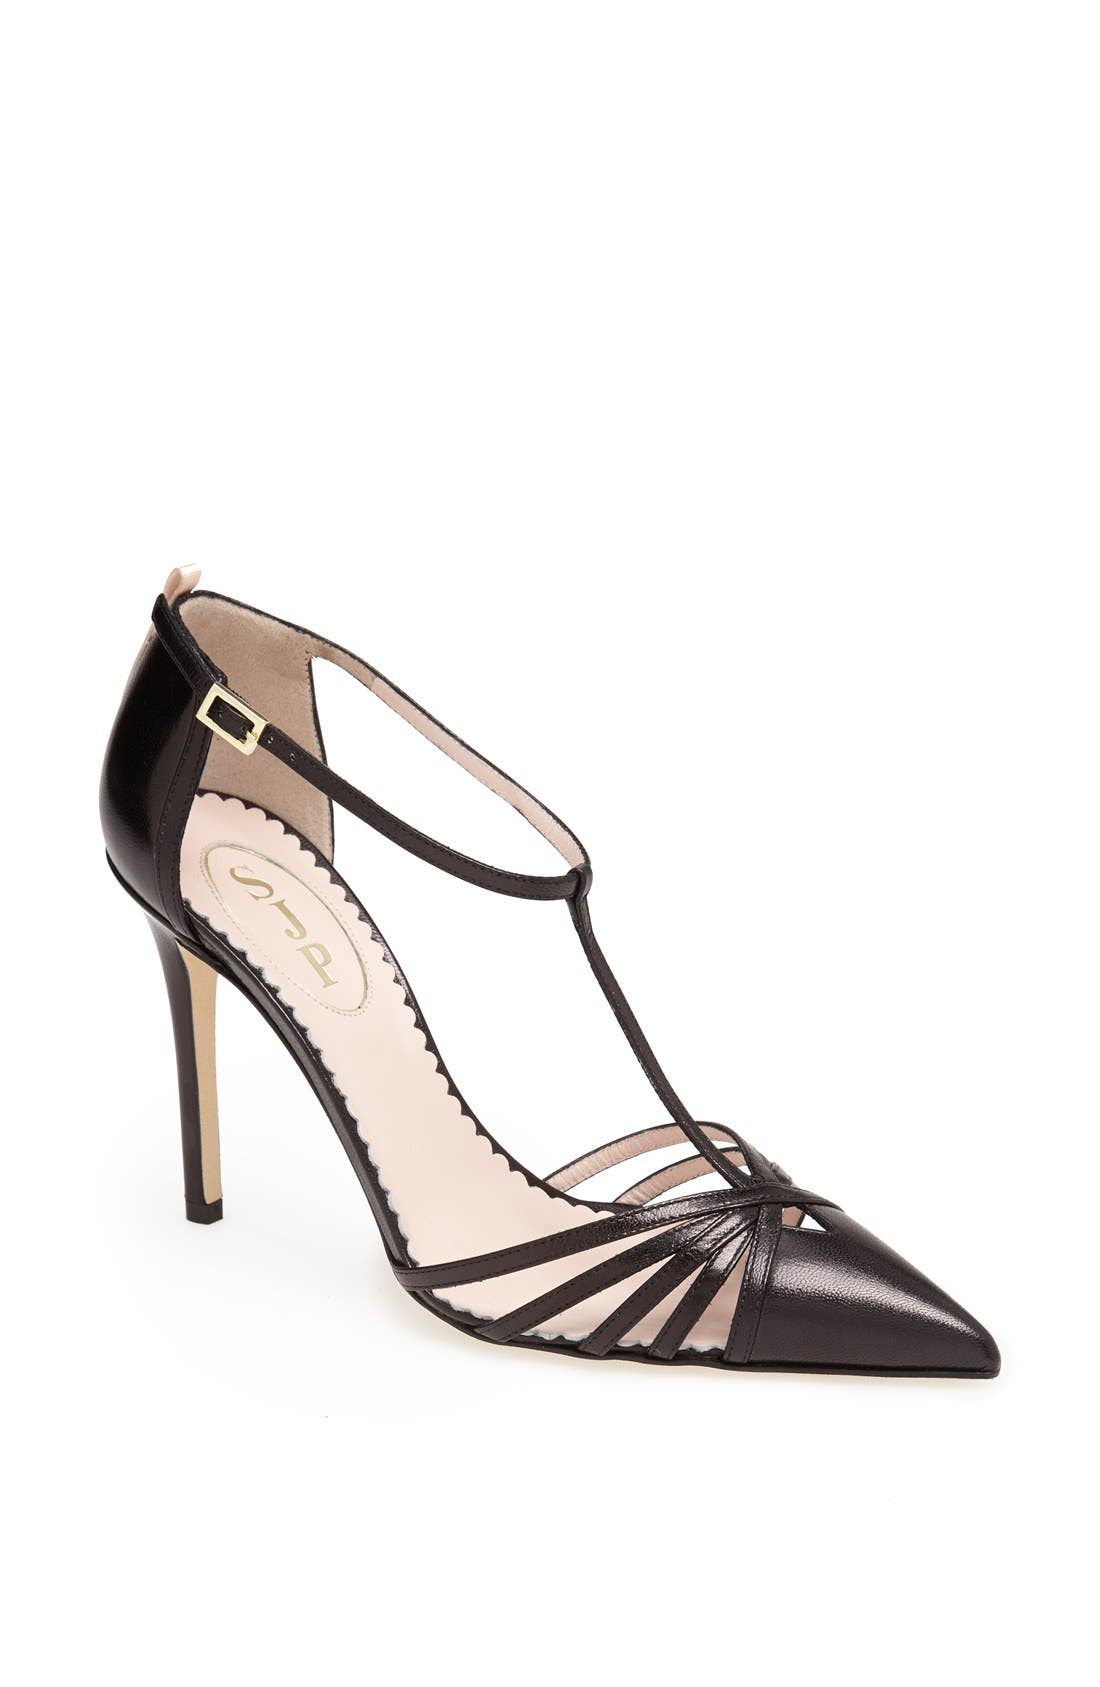 Main Image - SJP by Sarah Jessica Parker 'Carrie' T-Strap Pump